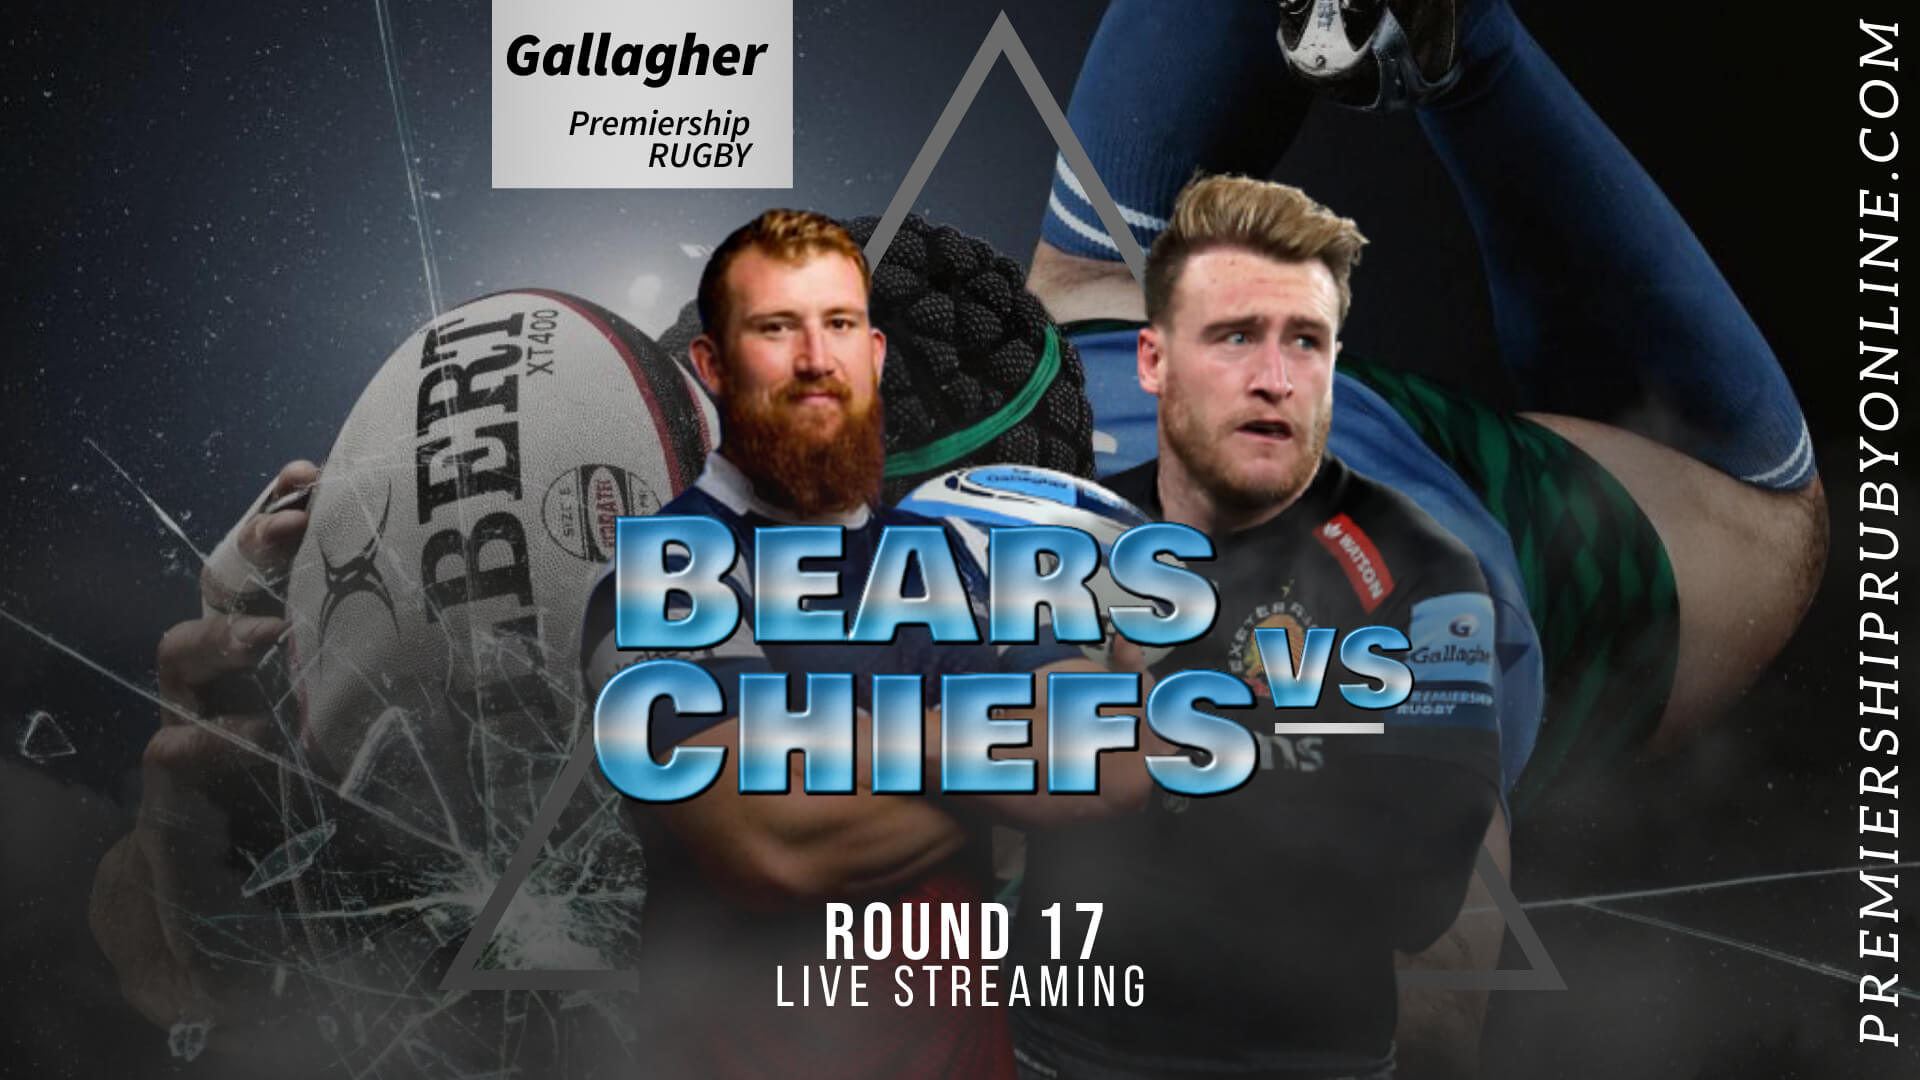 Bristol Bears Vs Exeter Chiefs Live Stream 2020-21 | Premiership Rugby RD 17 slider